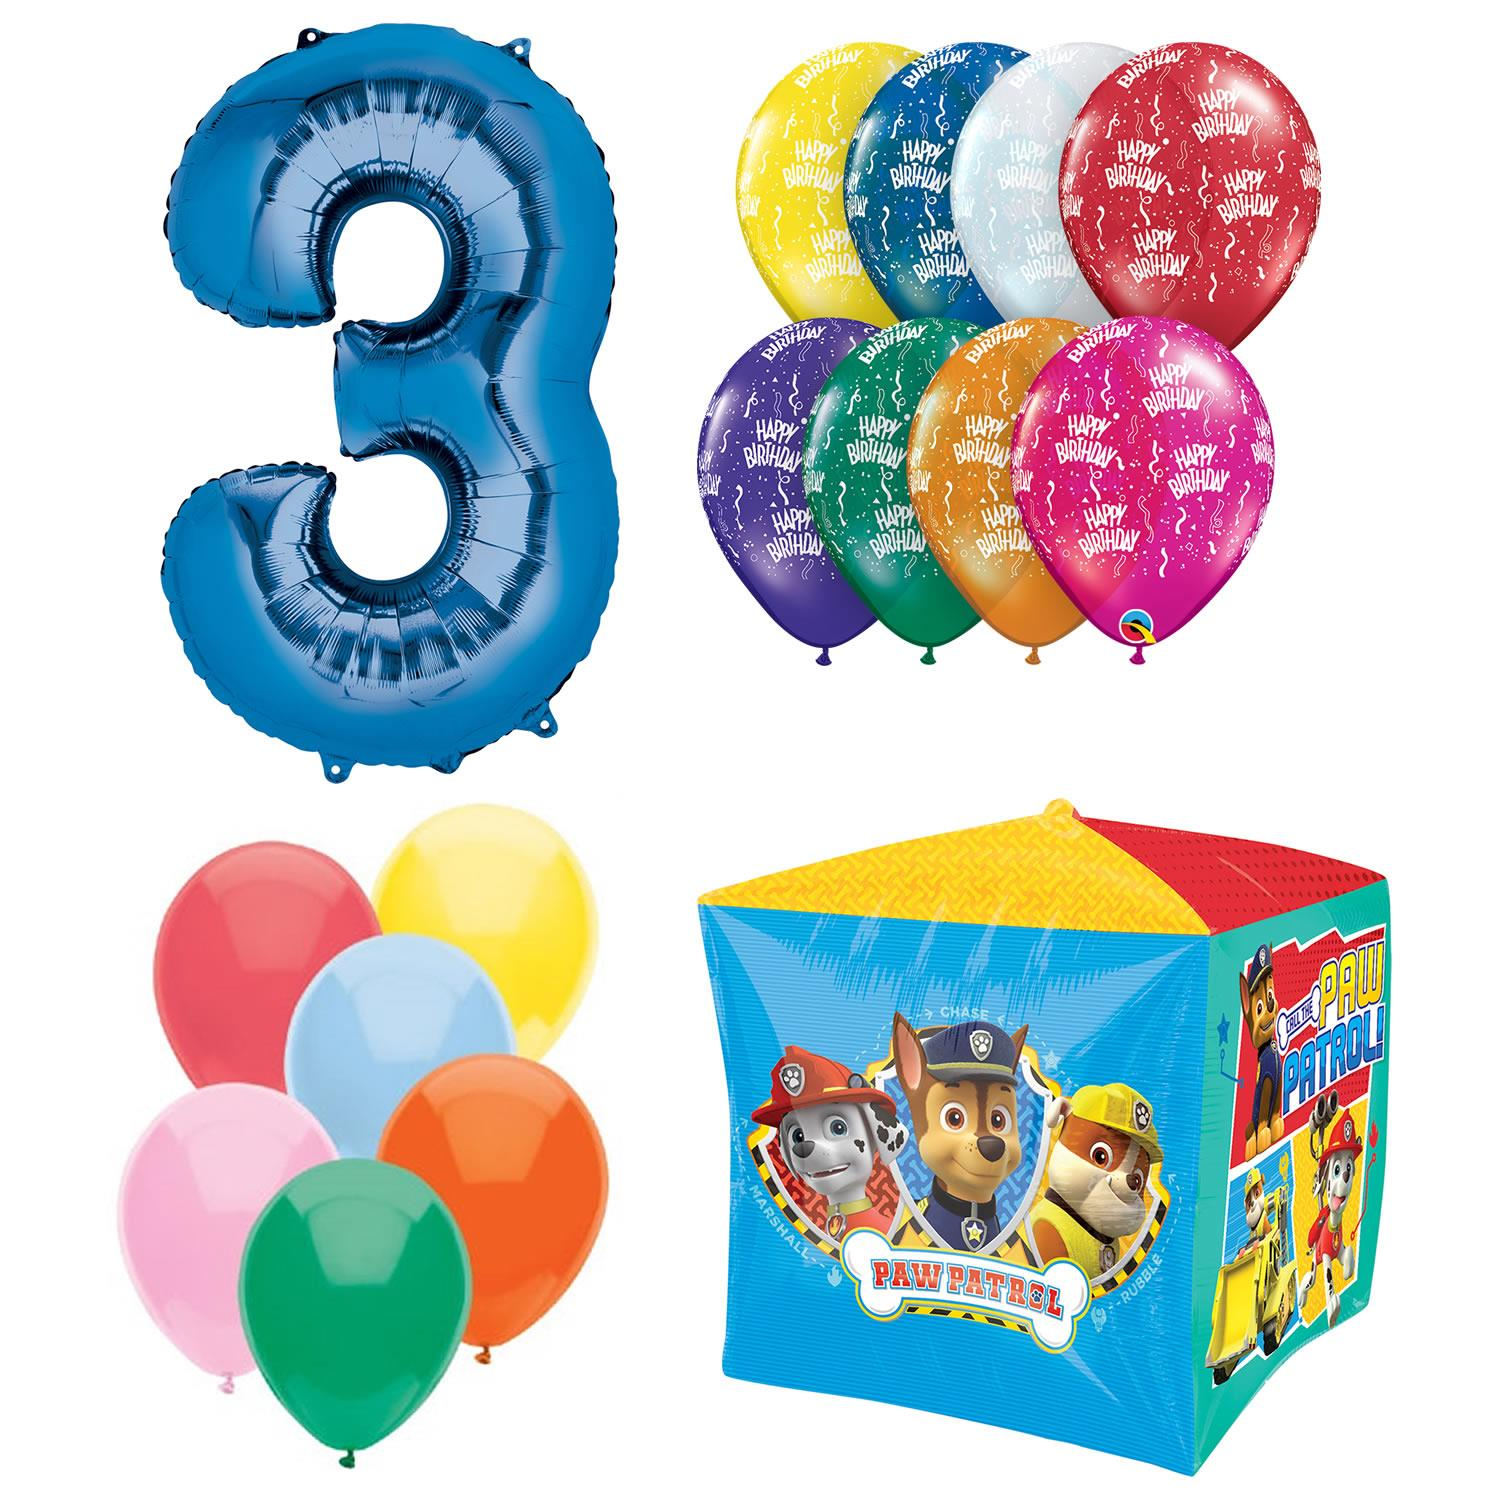 Paw Patrol Cubes Airwalker 3rd Birthday Ballon Bouquet Set Kids Party Decoration Anagram